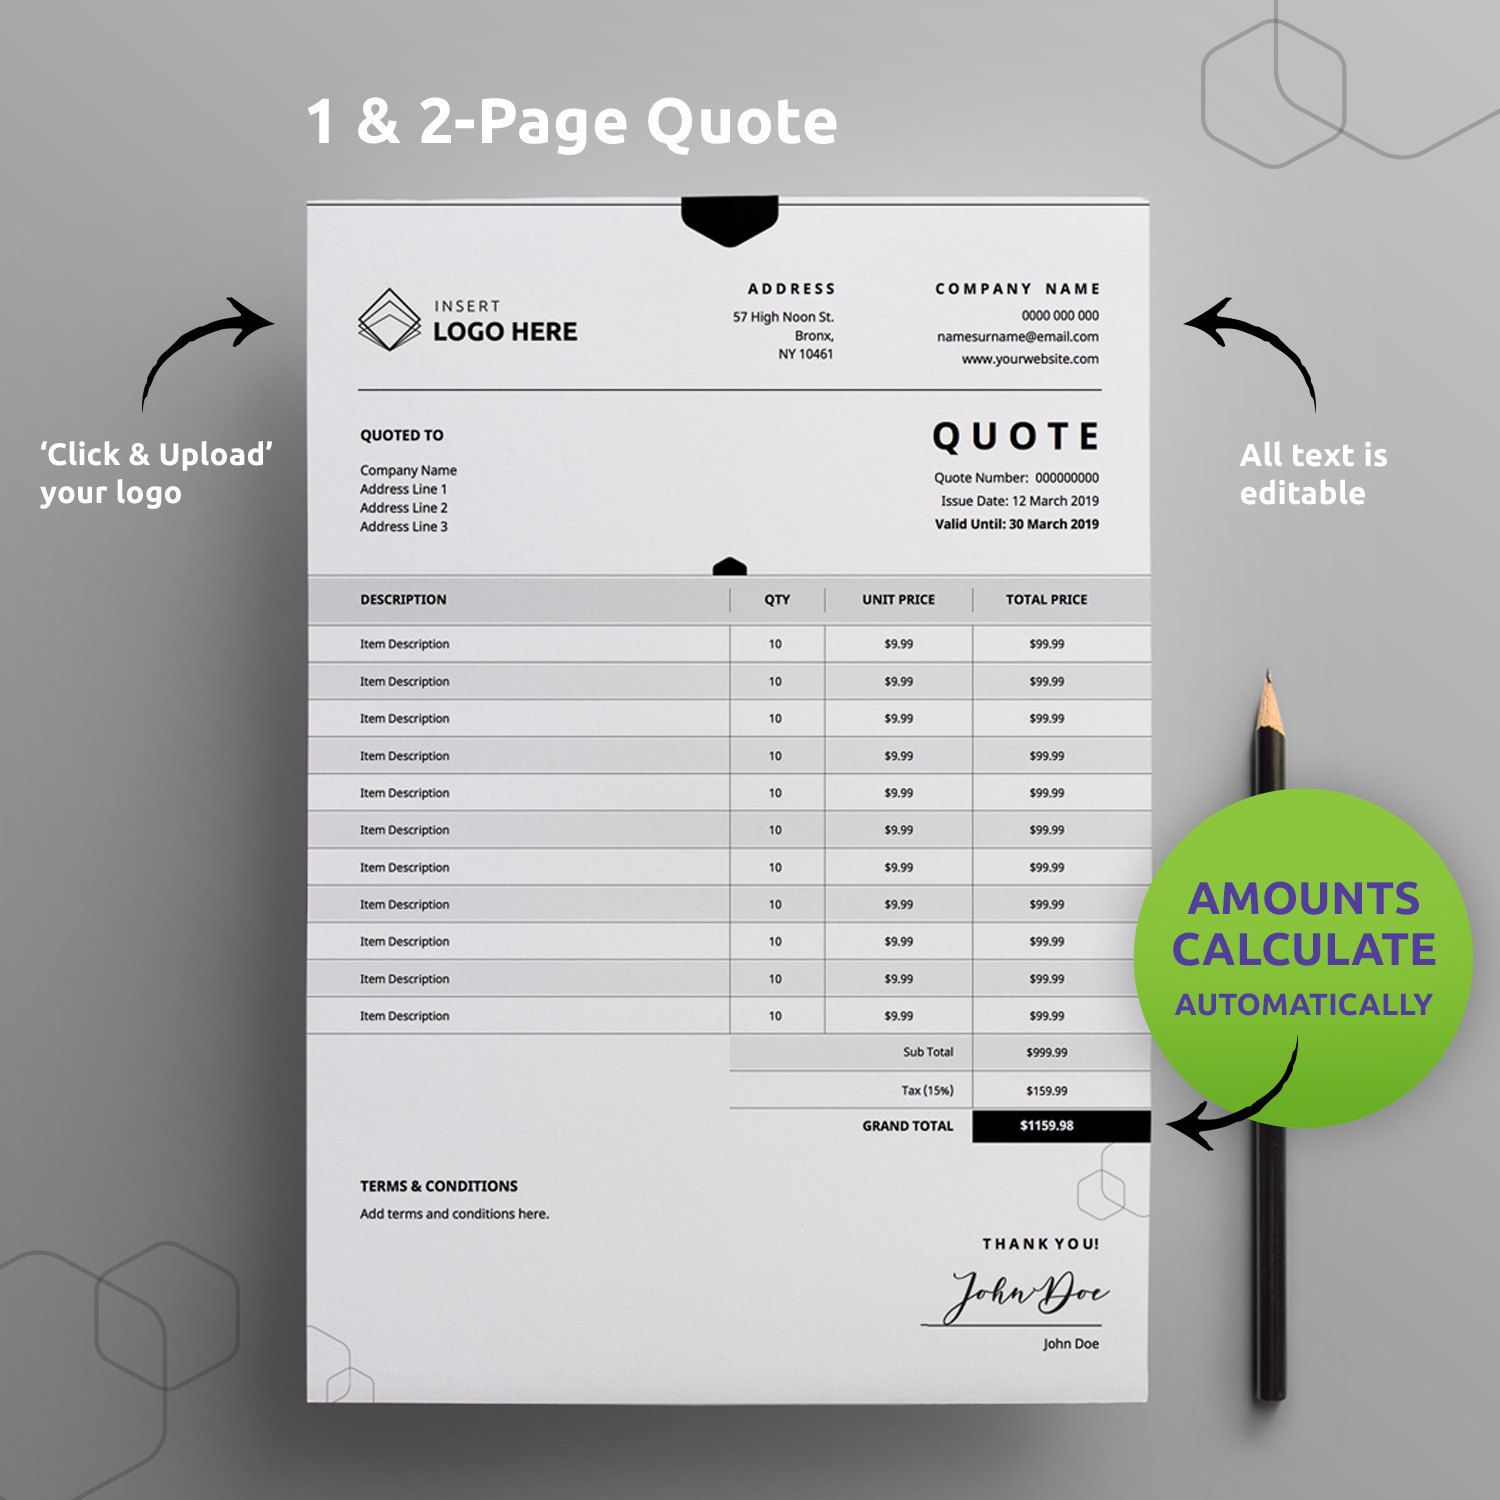 Custom Order Form Template 8 5x11 Letter A4 Printable Simple Etsy Invoice Template Order Form Template Printable Invoice